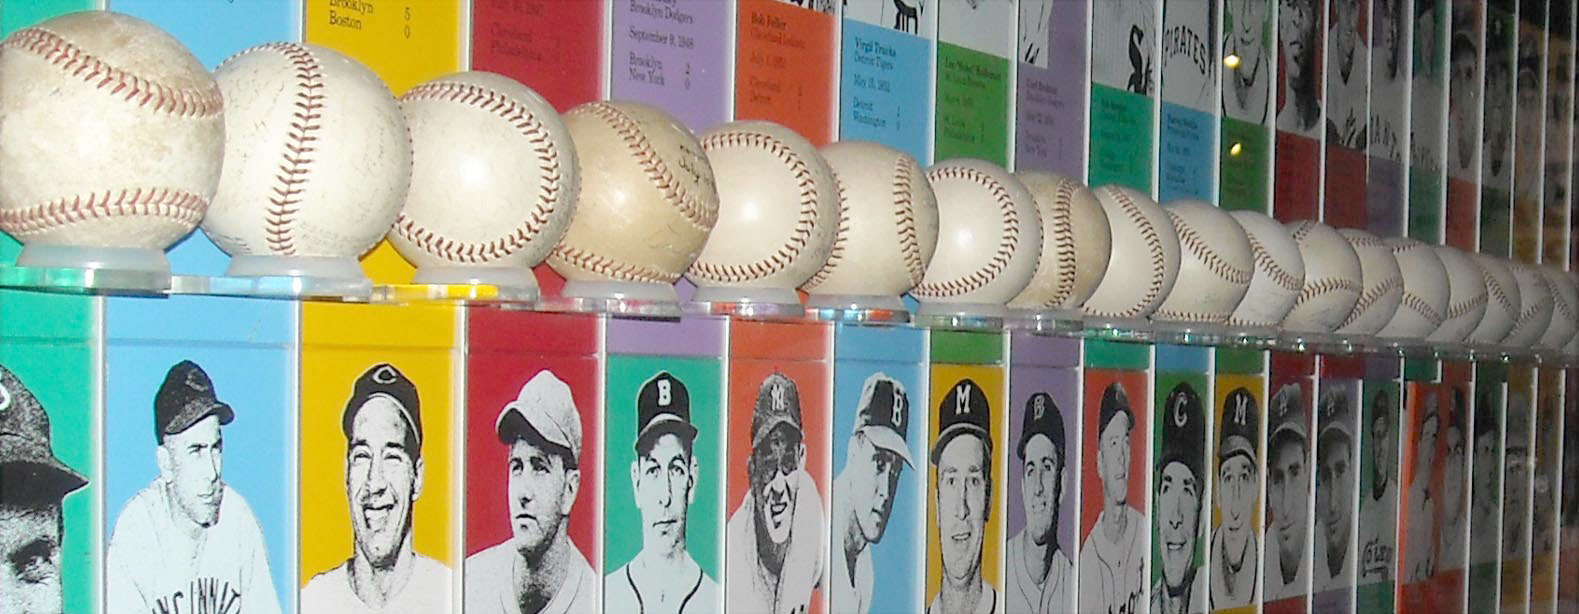 No-no balls from Hall of Fame